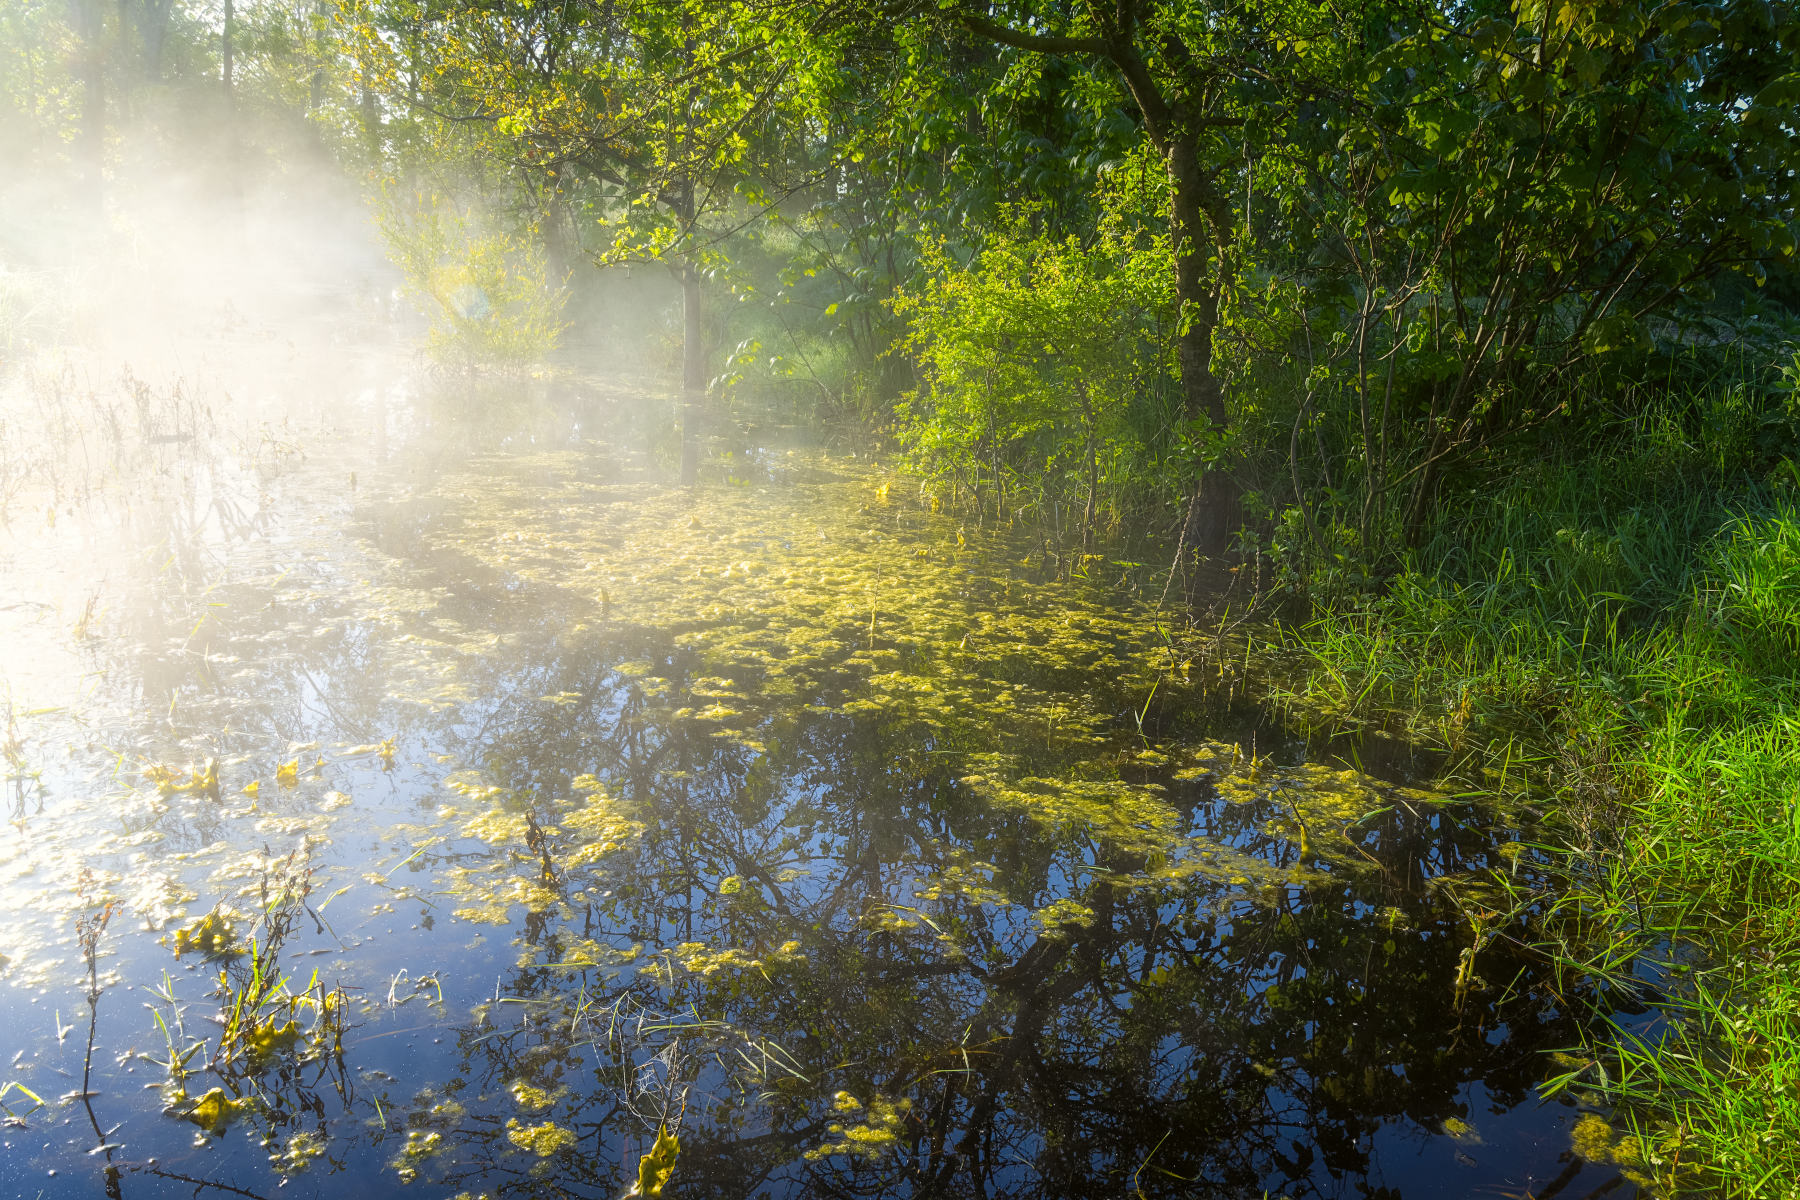 steaming forest canal in early morning light